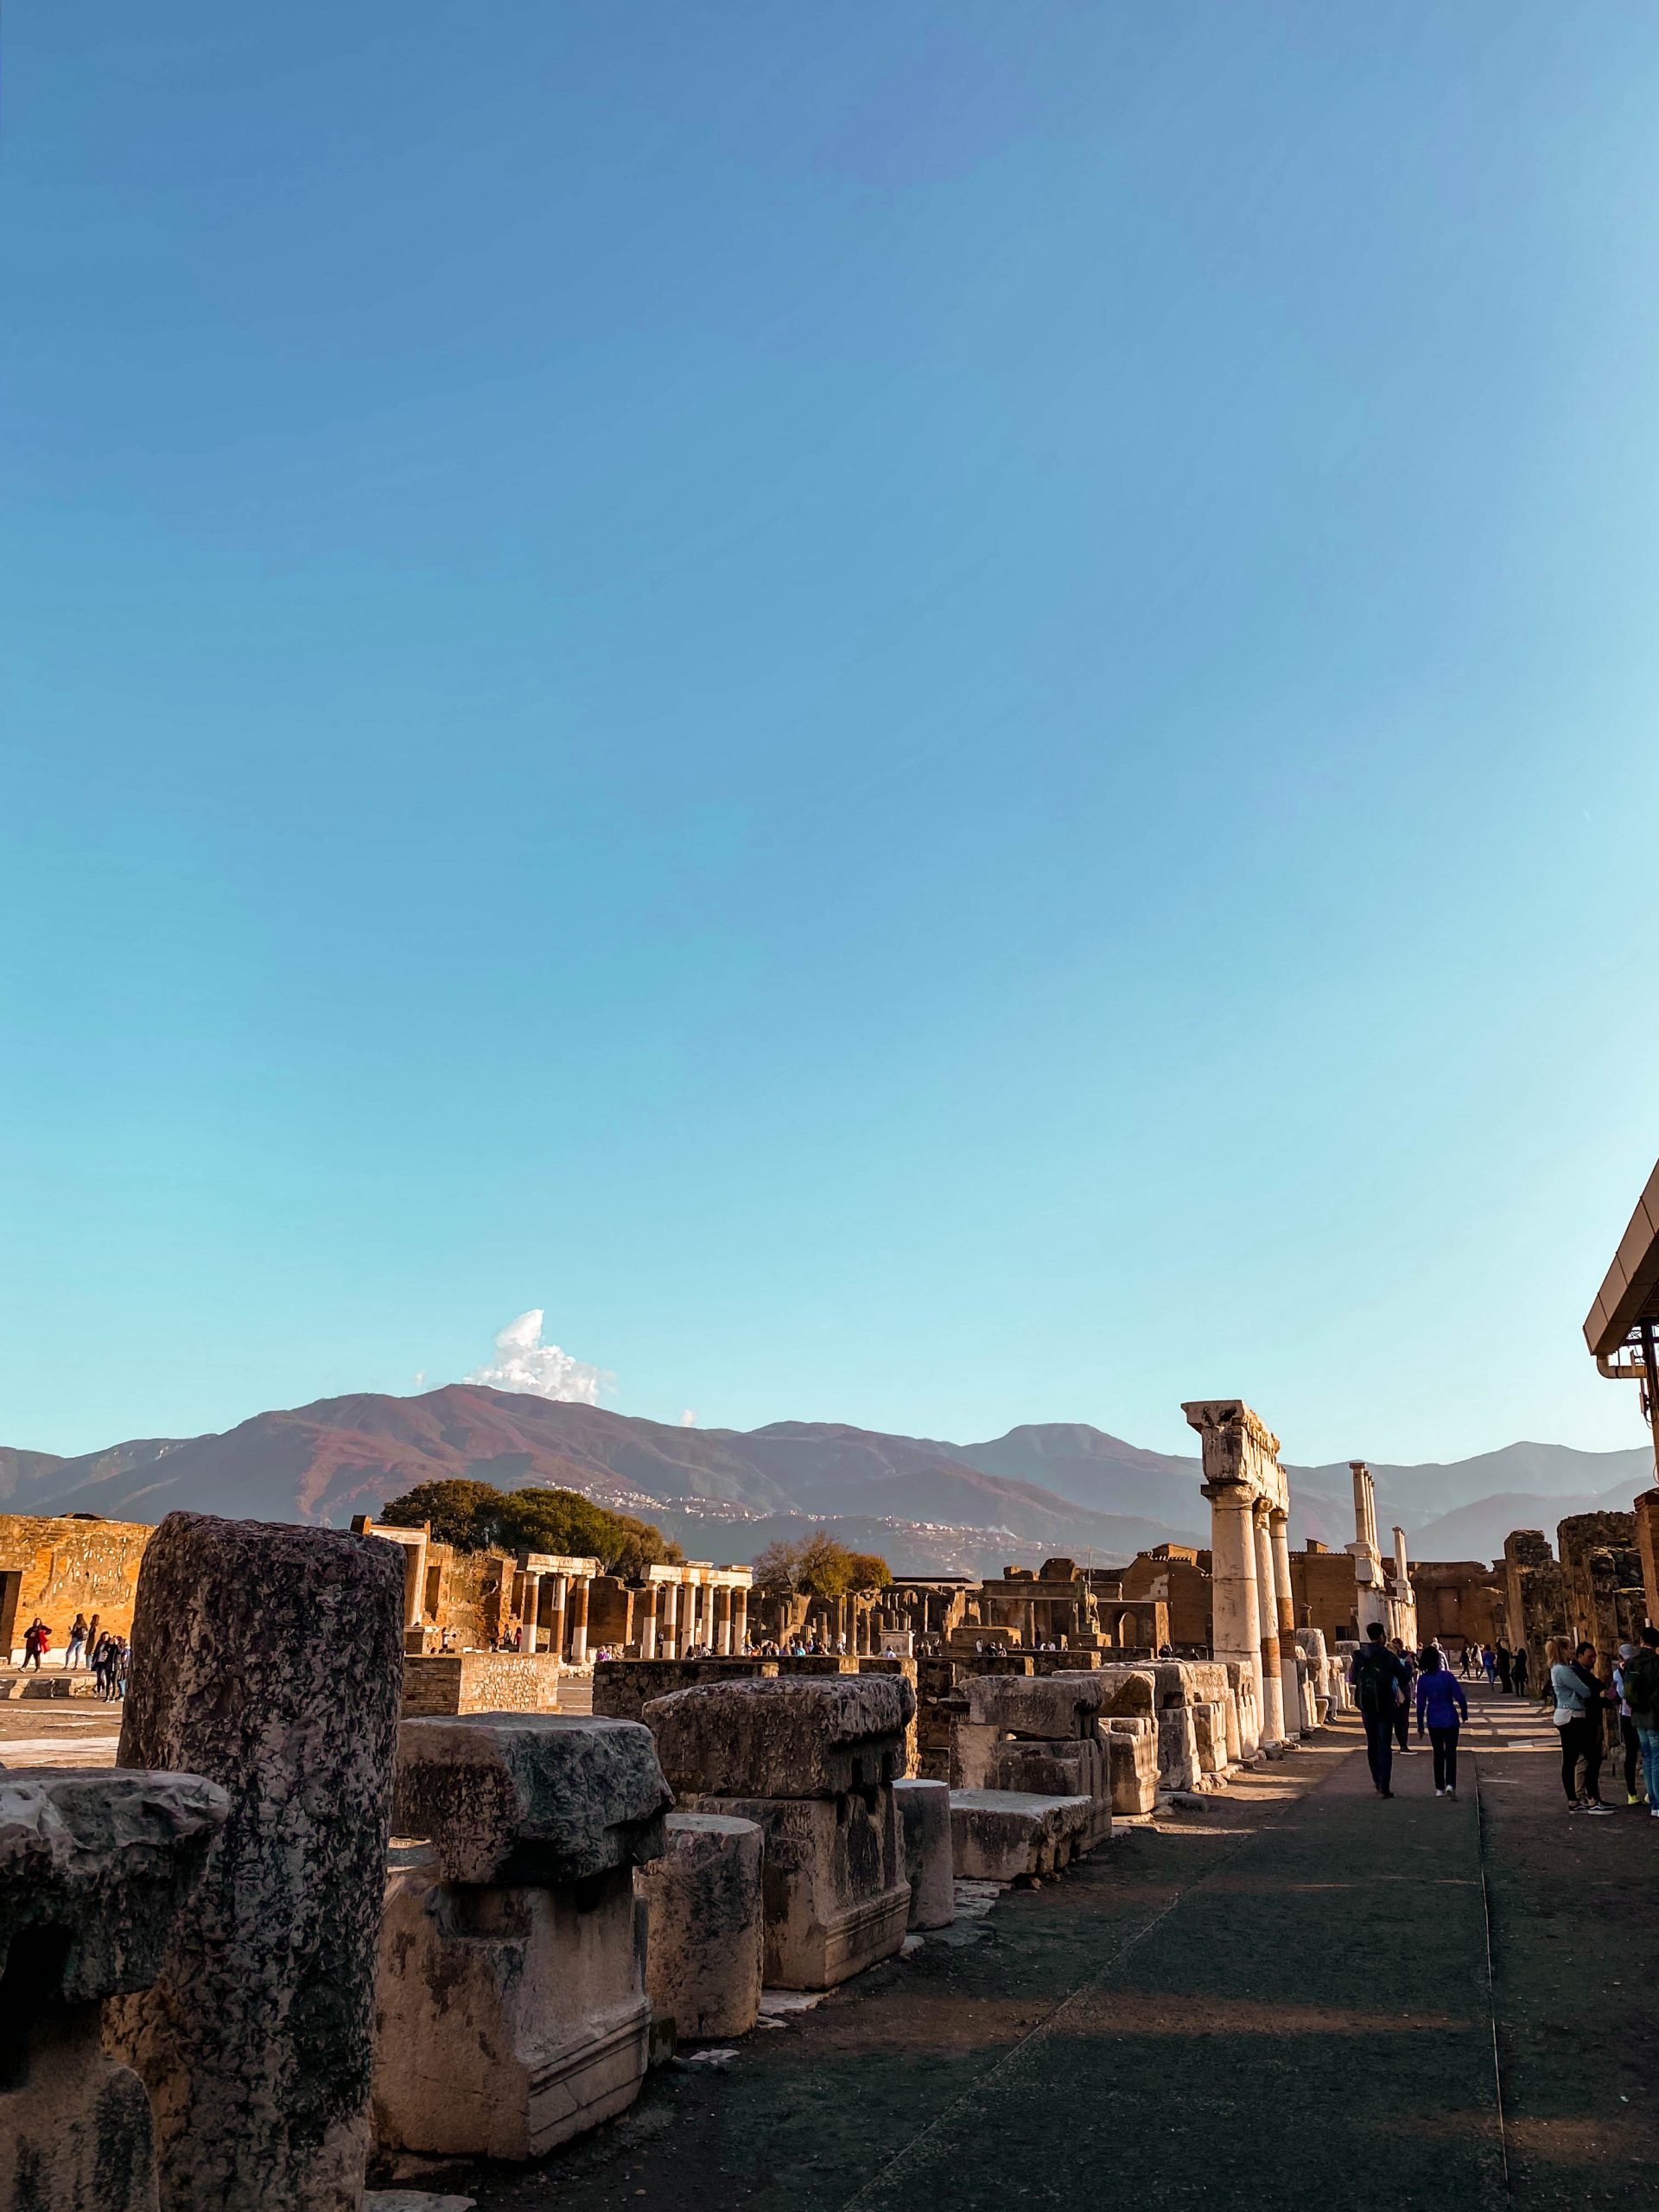 civil forum pompeii foro civile ruins ancient neoclassicism architecture